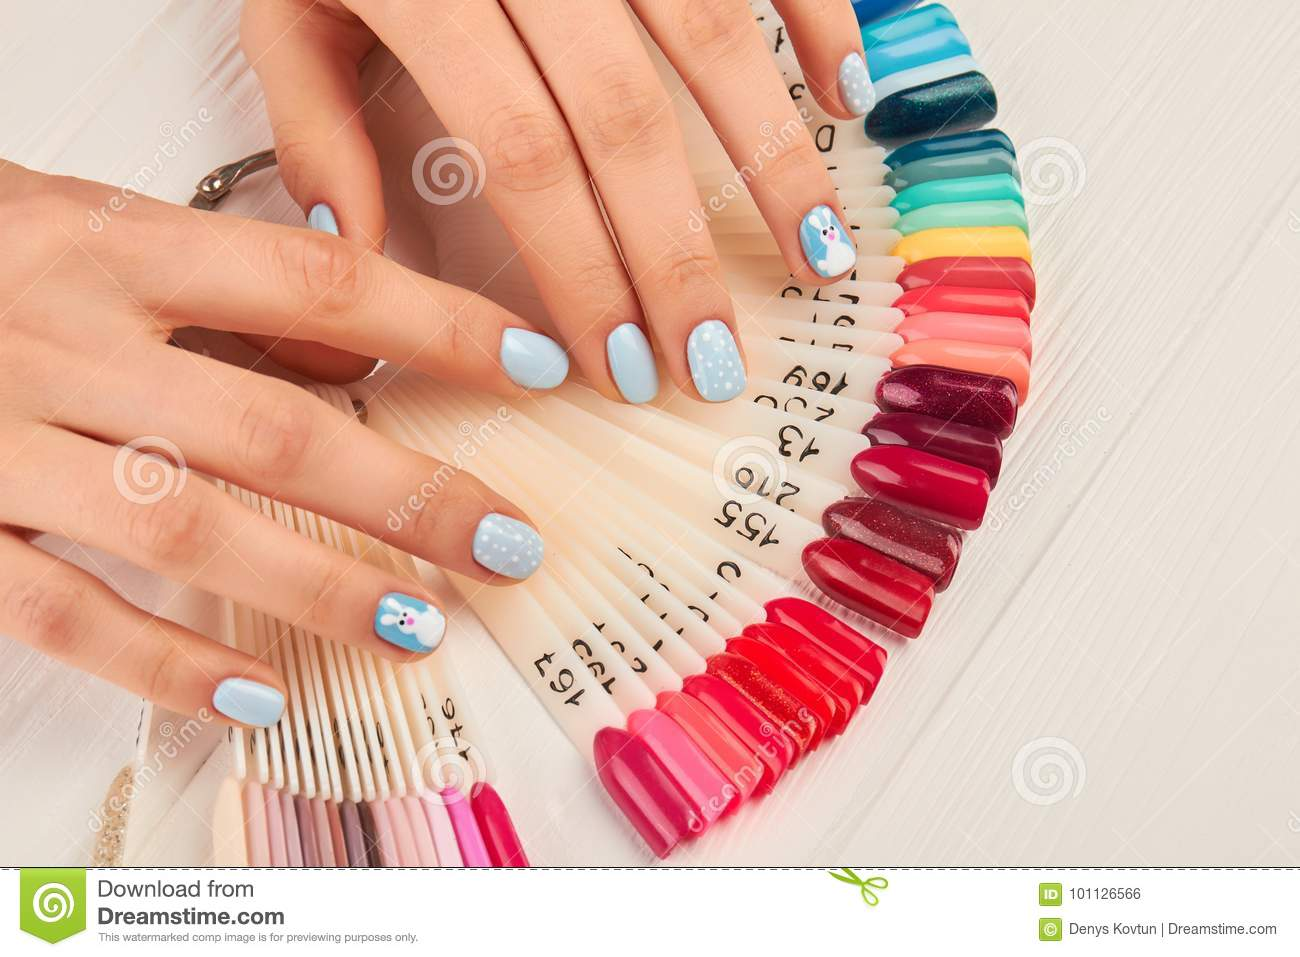 Manicured Hands And Collection Of Nail Samples. Stock Photo - Image ...